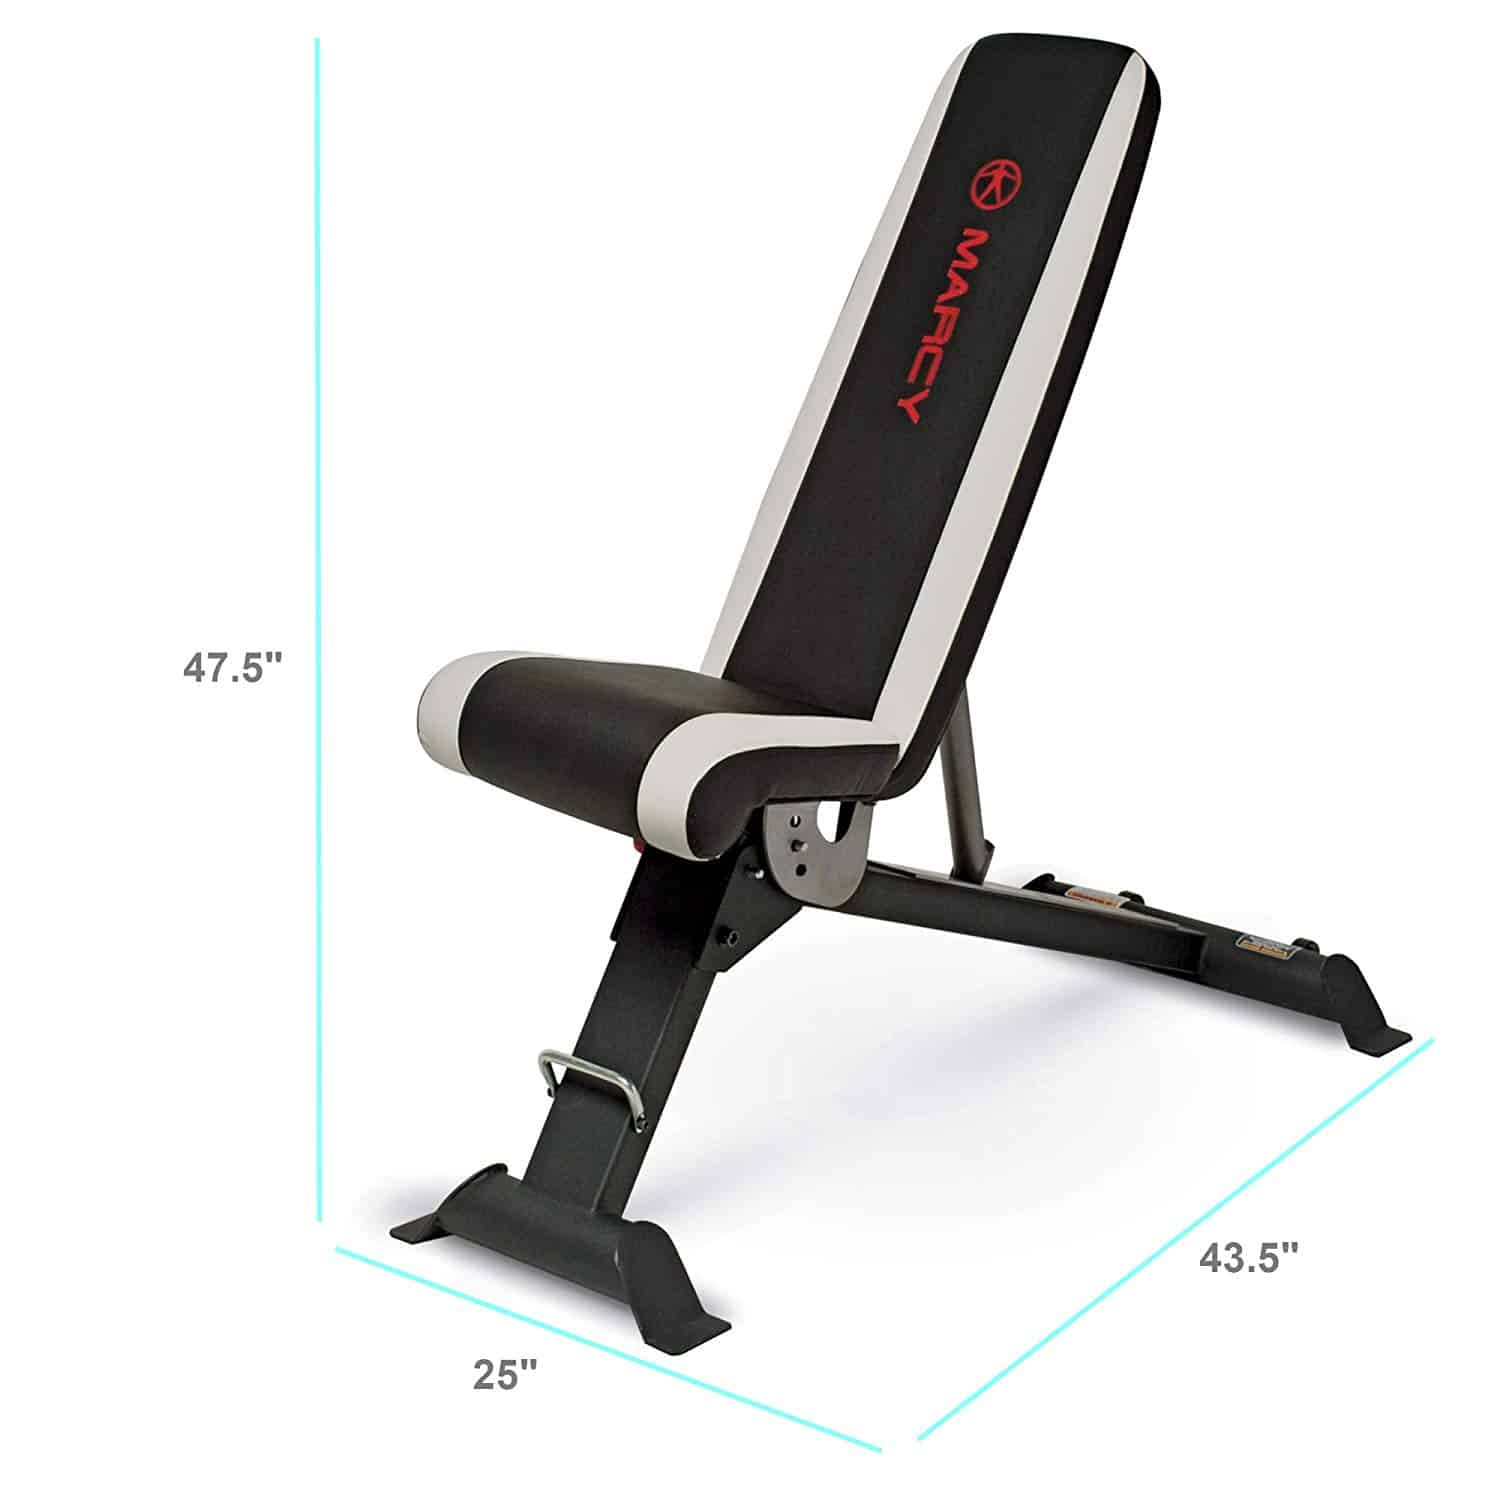 Marcy Adjustable Utility Bench for Home Gym Workout